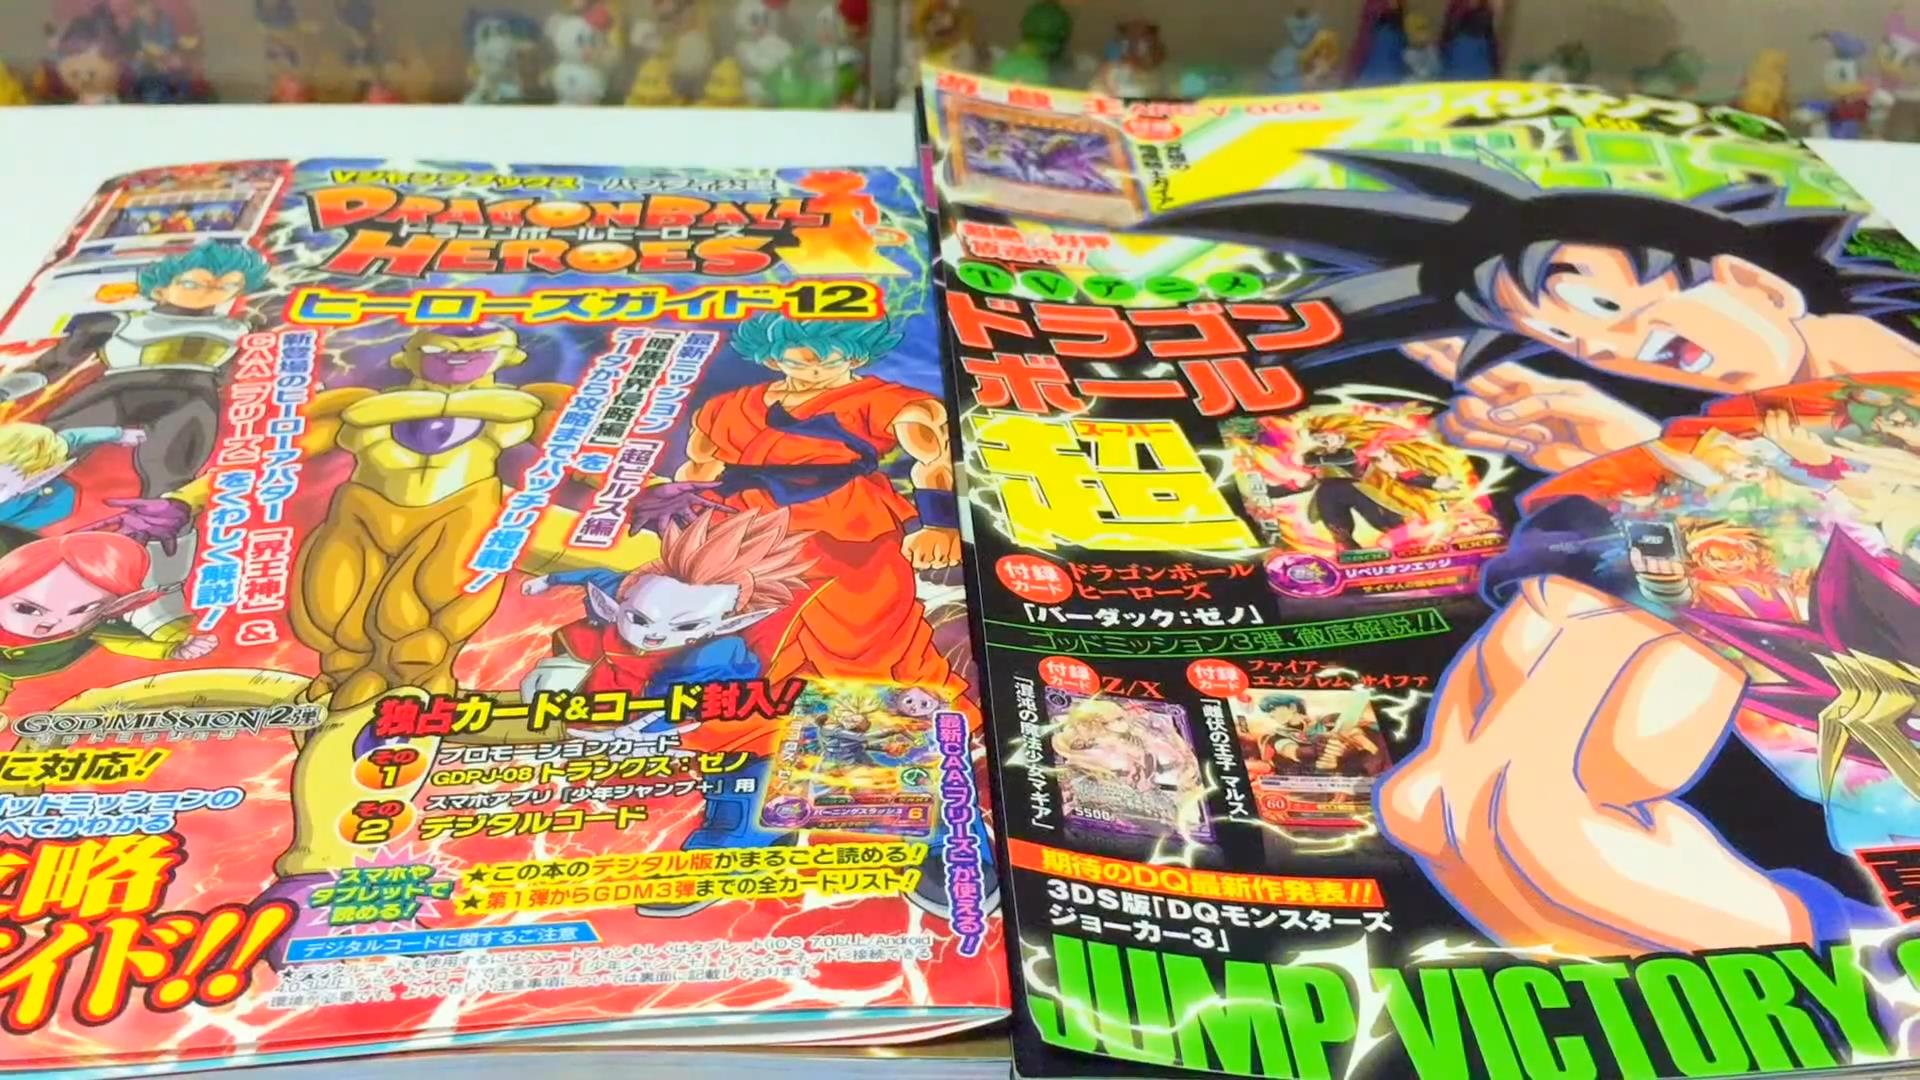 Dragon Ball Super V-Jump#9 & Heroes Guide 12 Review